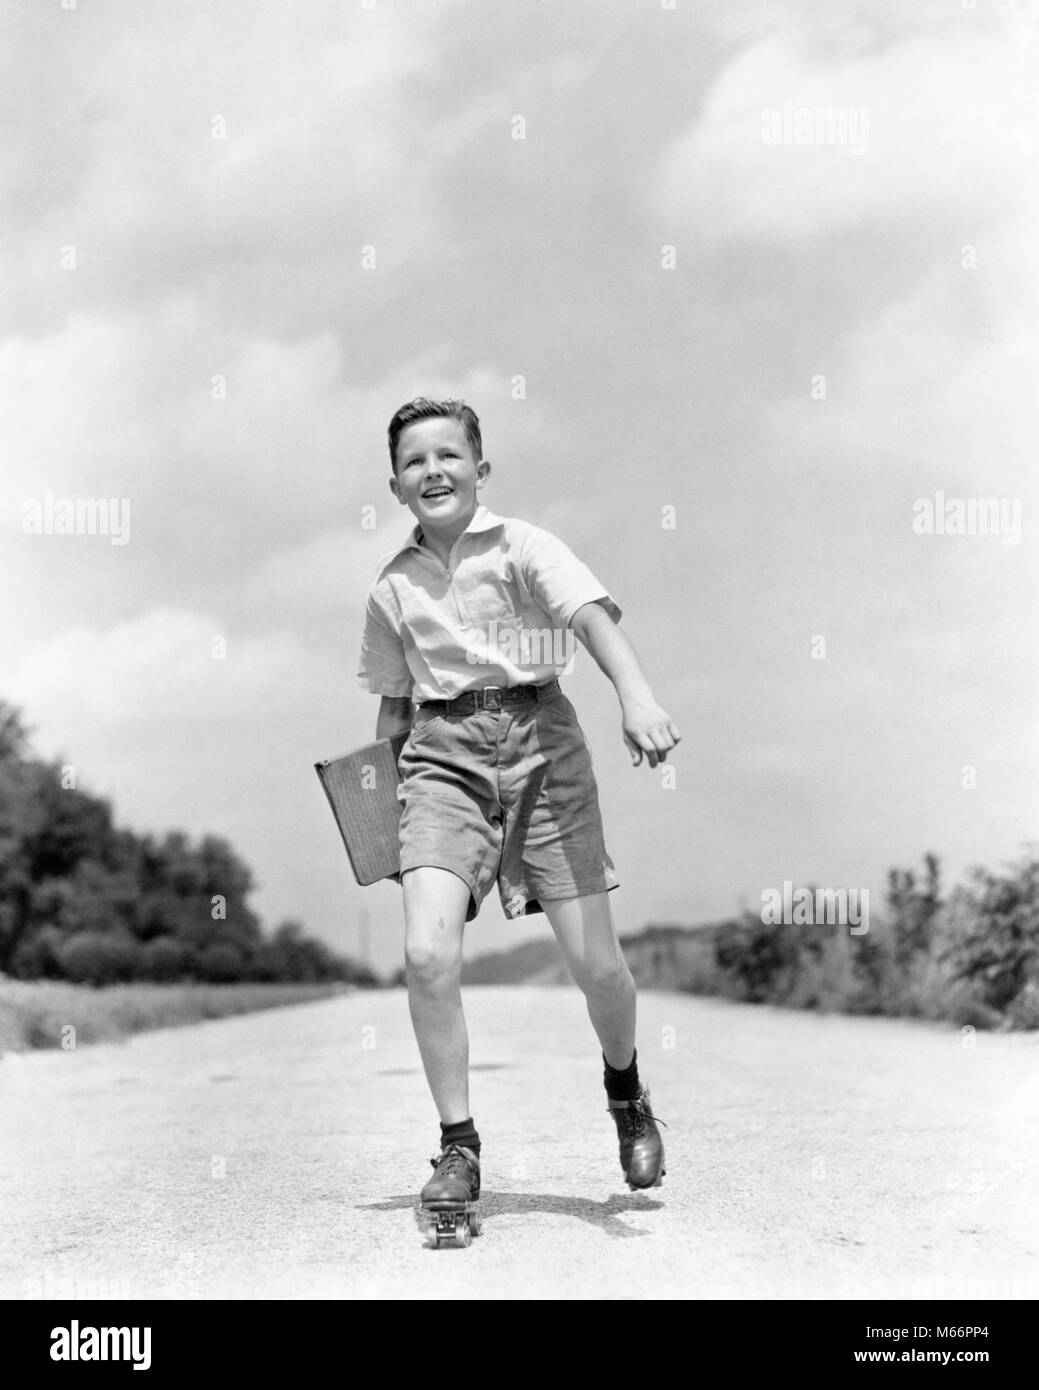 1930s 1930s SMILING BOY ROLLER SKATING TO SCHOOL LOOKING AT CAMERA CARRYING TEXTBOOK BINDER - s780 HAR001 HARS COPY - Stock Image